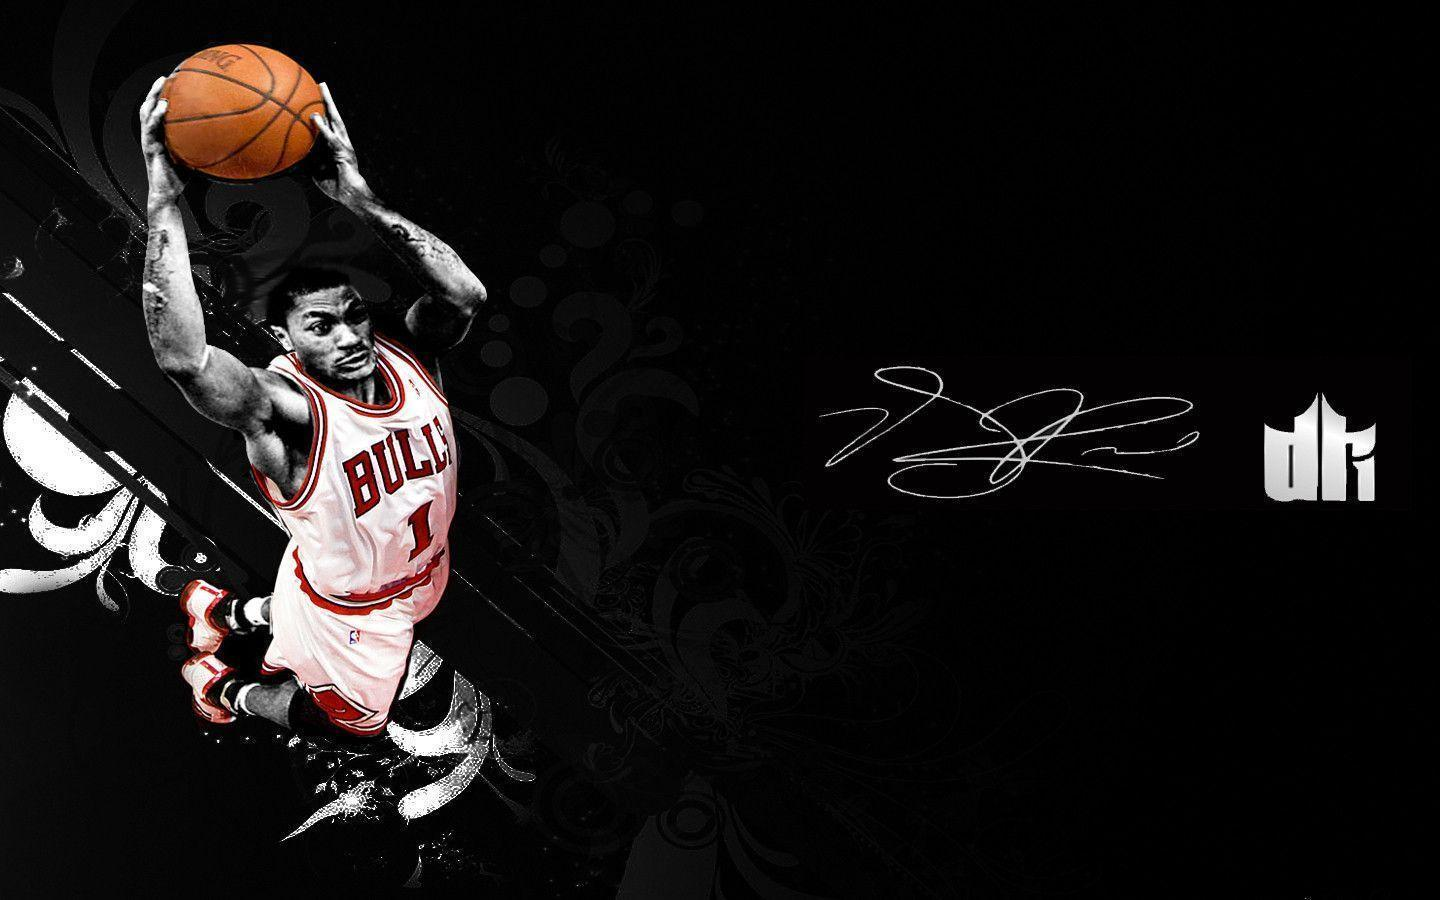 Derrick Rose Wallpapers 1440x900